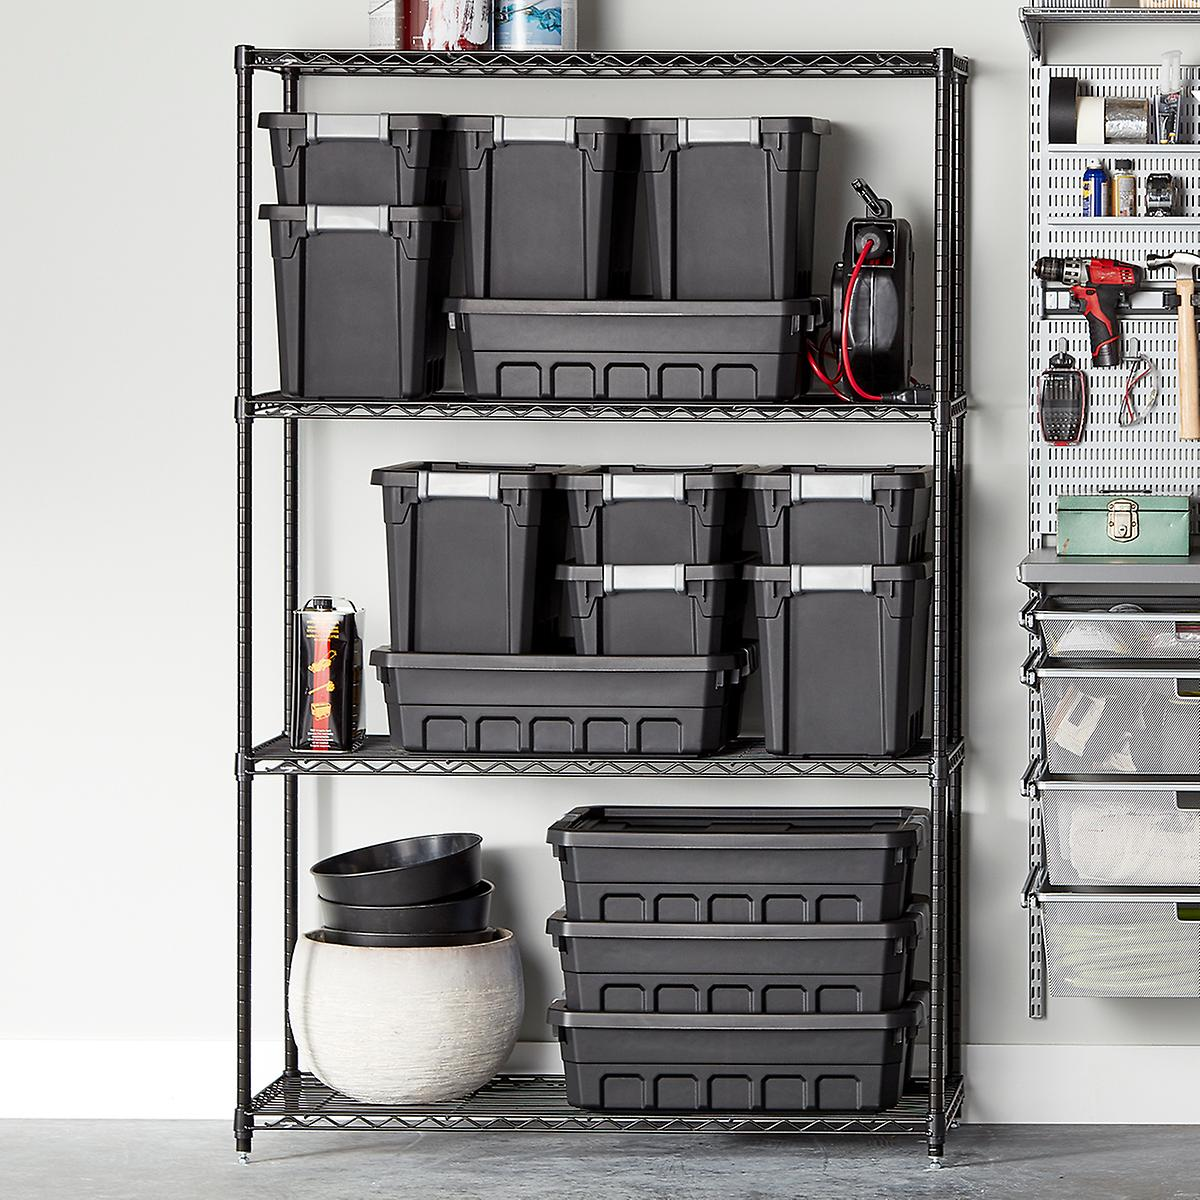 InterMetro Black Heavy-Duty Home Shelving